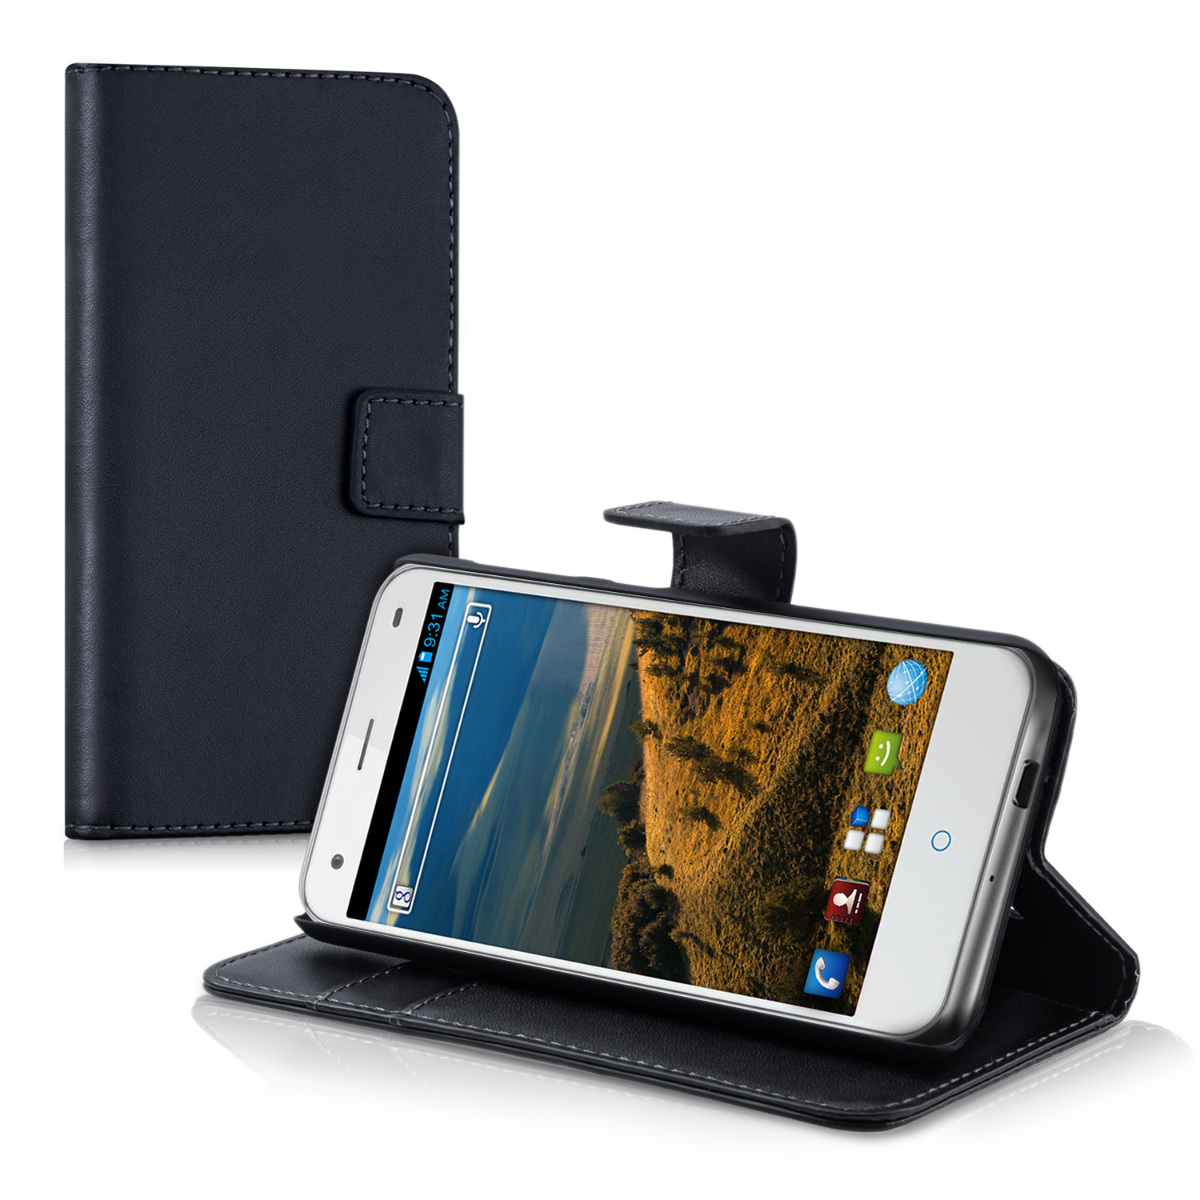 can zte 4g lte cases you